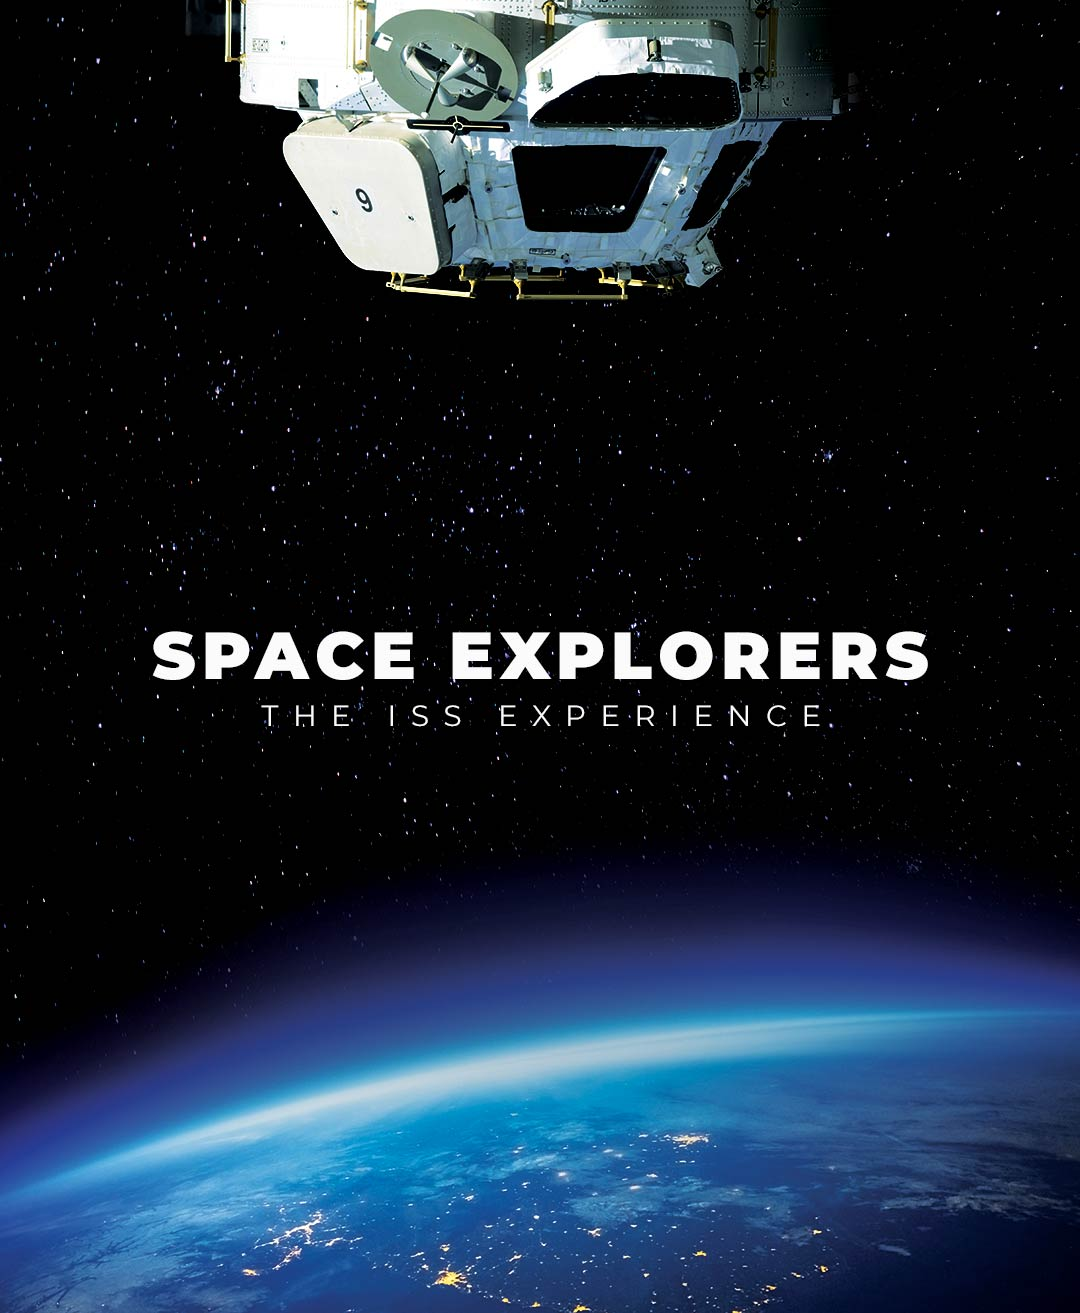 Space Explorers: ISS Experience